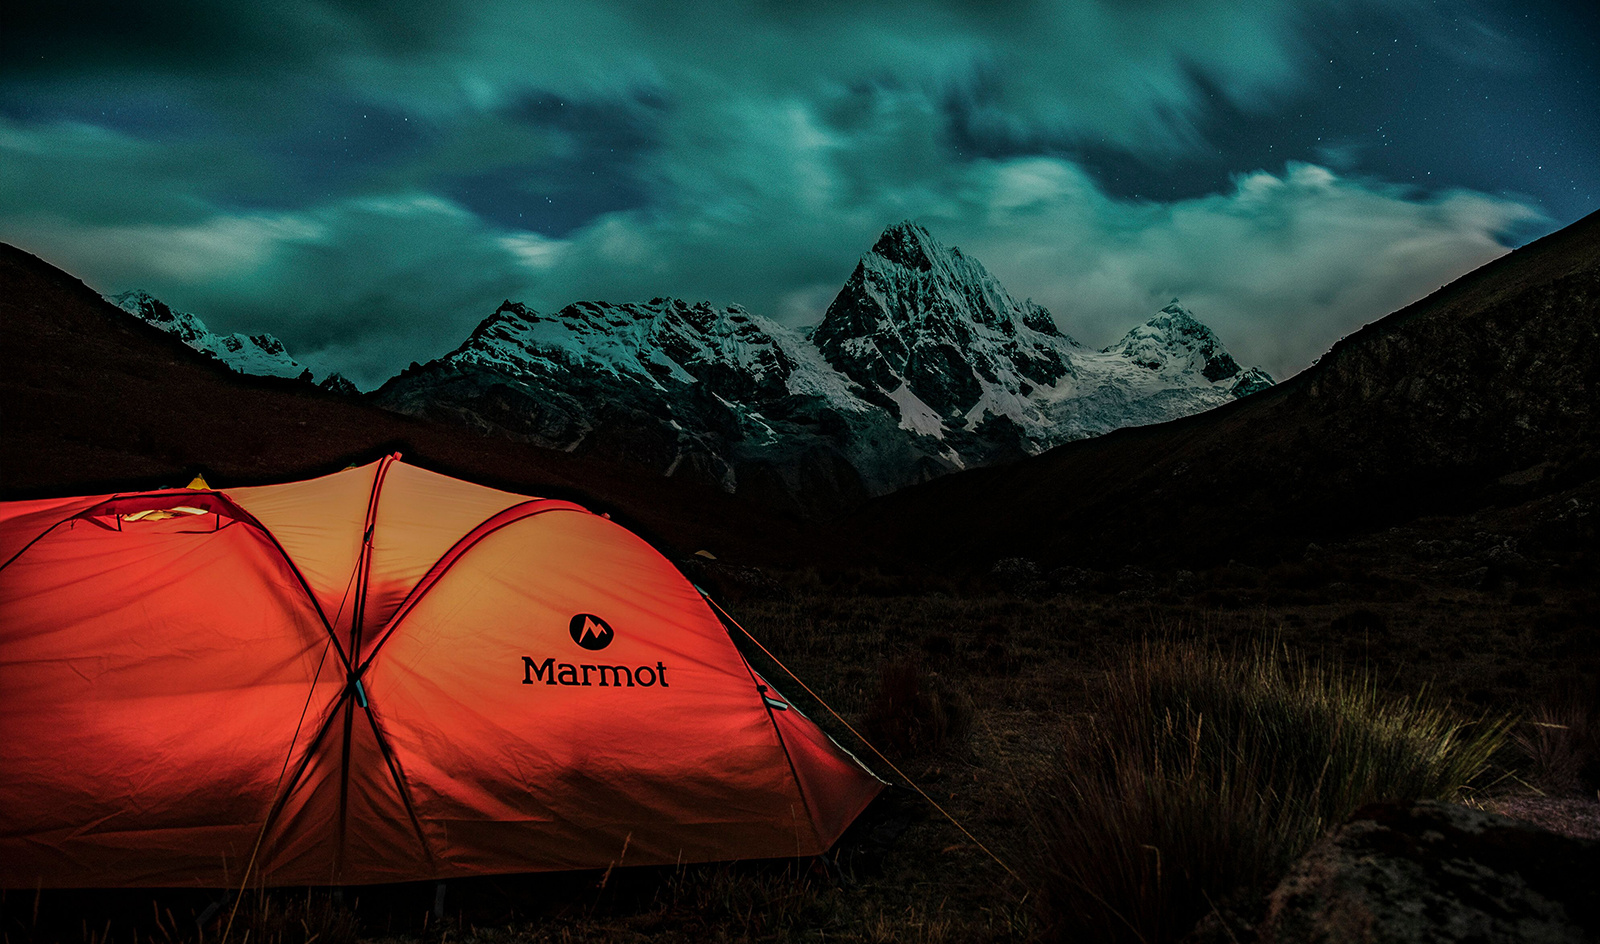 Marmot - Outdoor Clothing & Gear